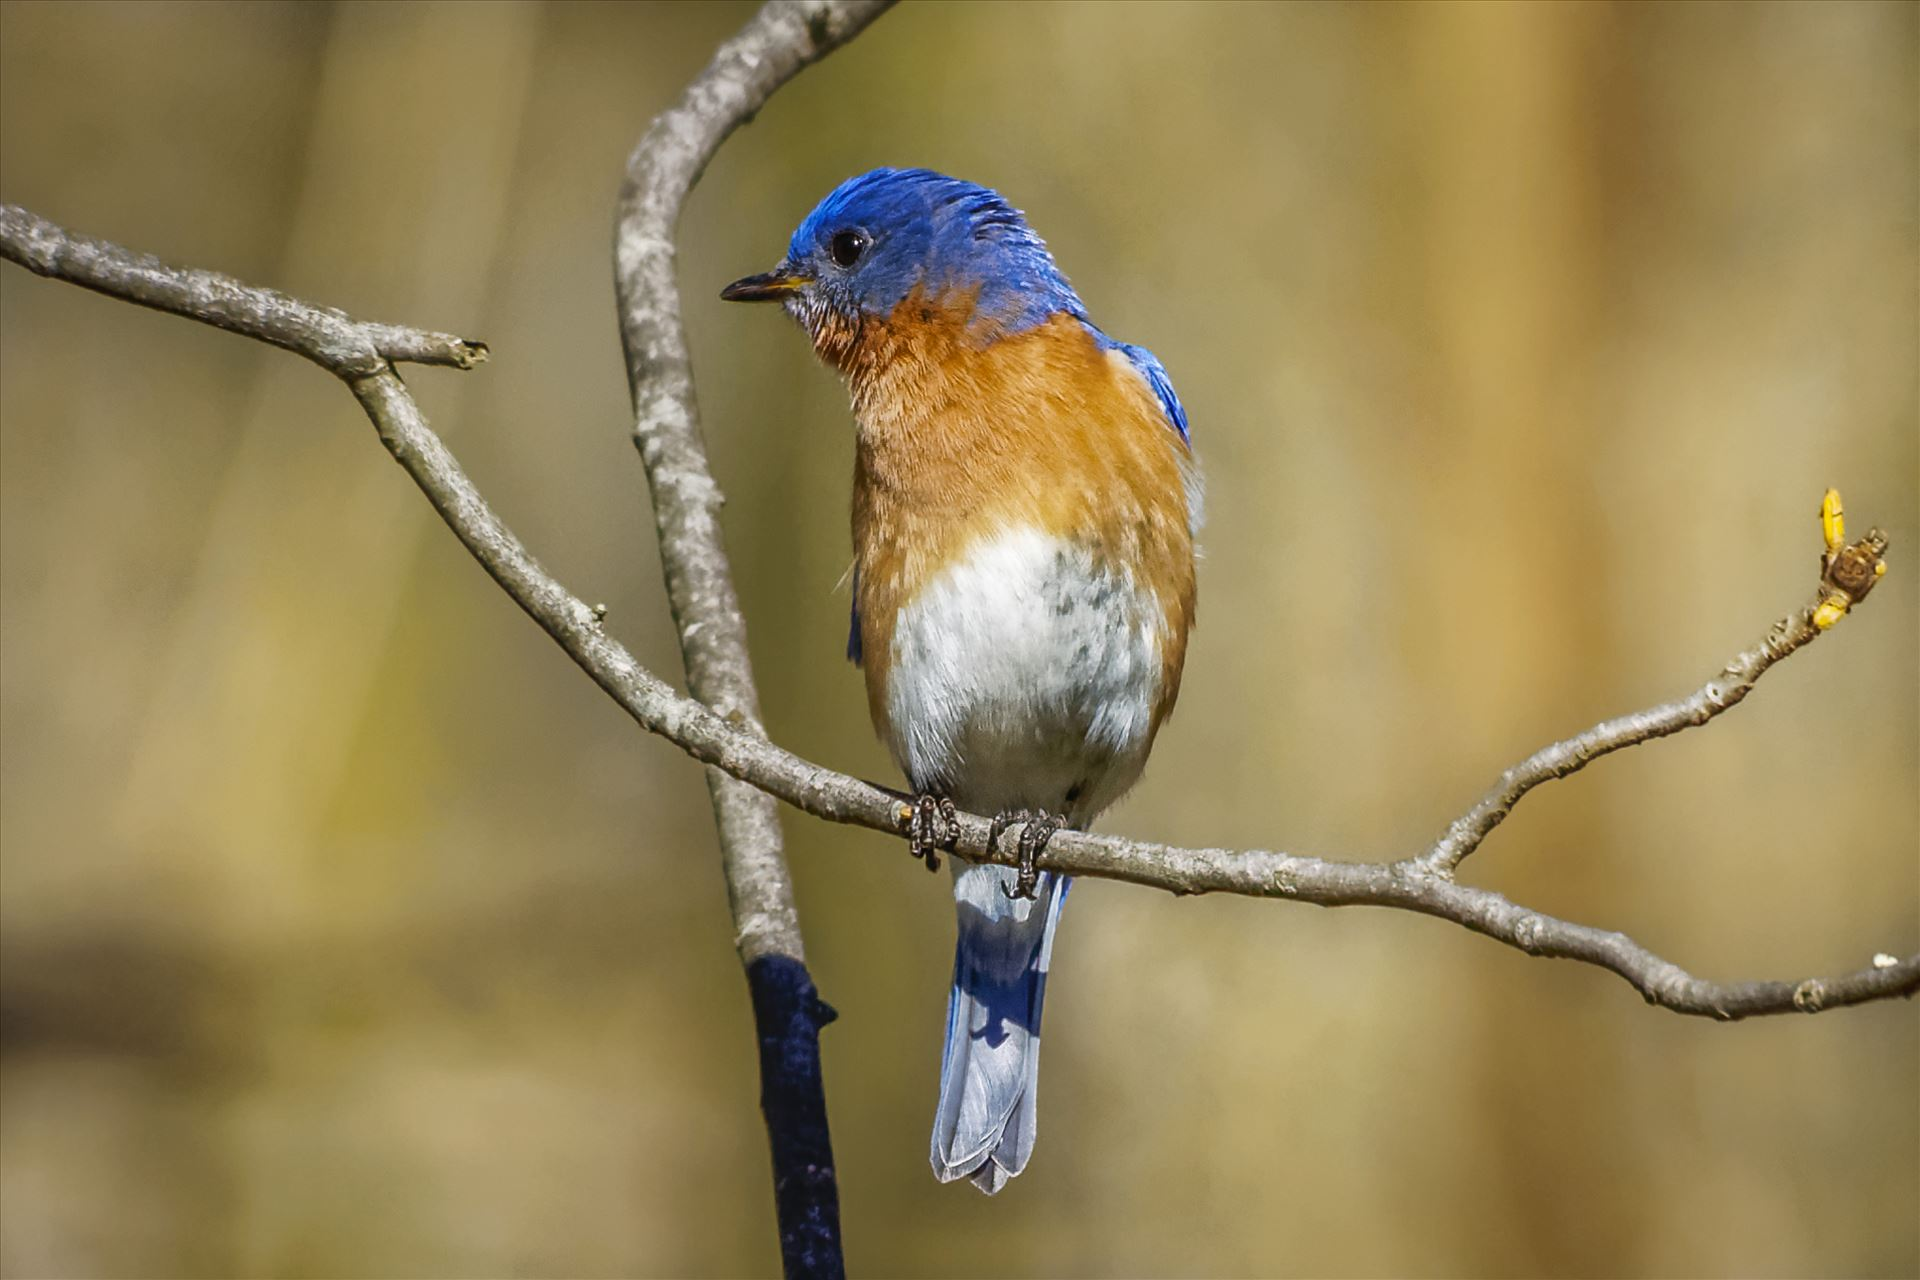 Eastern Bluebird - Male Eastern Bluebird by Buckmaster